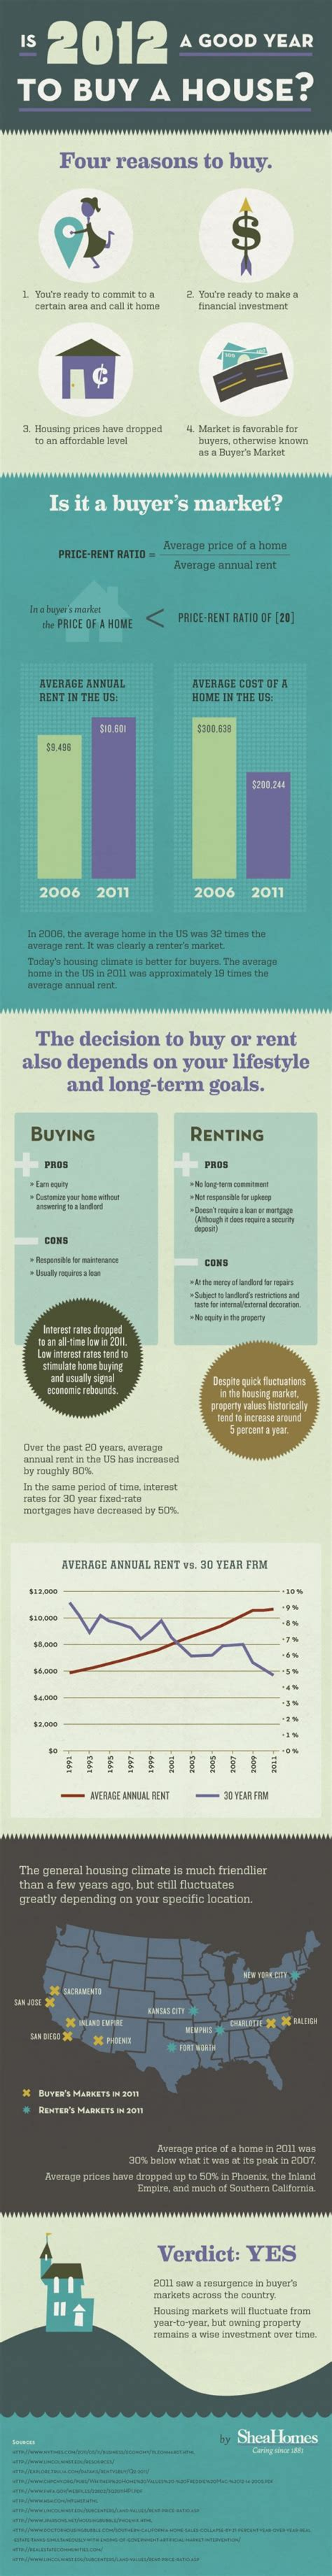 buying a second house to rent should you buy a house this year midweek infographic all things finance